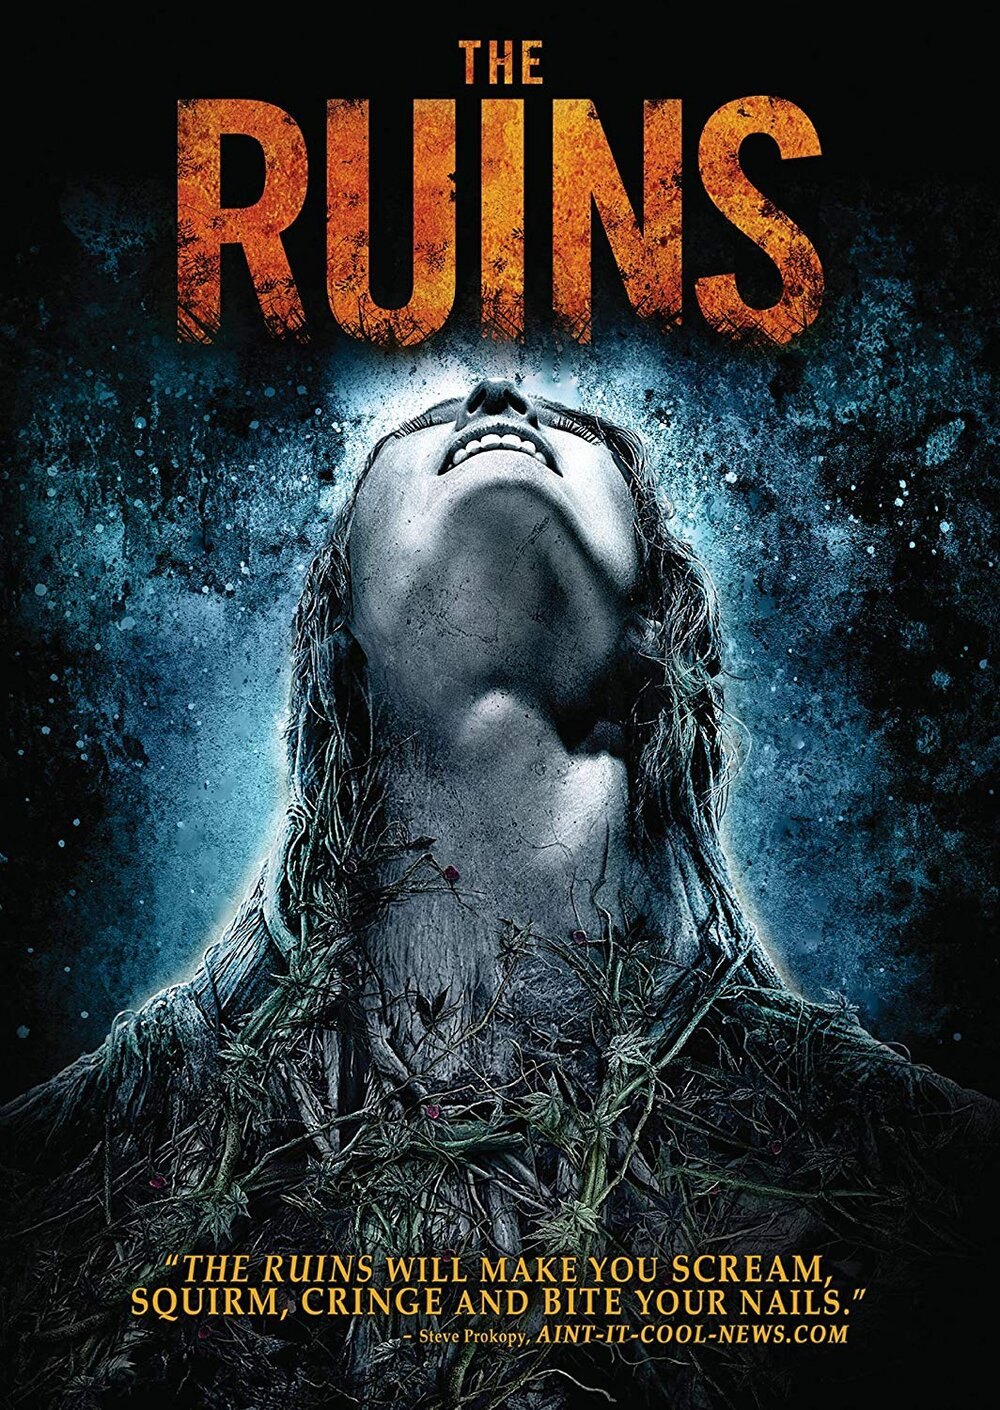 The Ruins (2008) - Directed by: Carter SmithStarring: Laura Ramsey, Jena Malone, Jonathan Tucker, Shawn AshmoreRated: R for Strong Violence and Gruesome ImagesRunning Time: 1h 30mTMM Score: 2 StarsSTRENGTHS: Good Ideas, Decent DeathsWEAKNESSES: Amateur Writing, Too Familiar, Silly Character Motivations